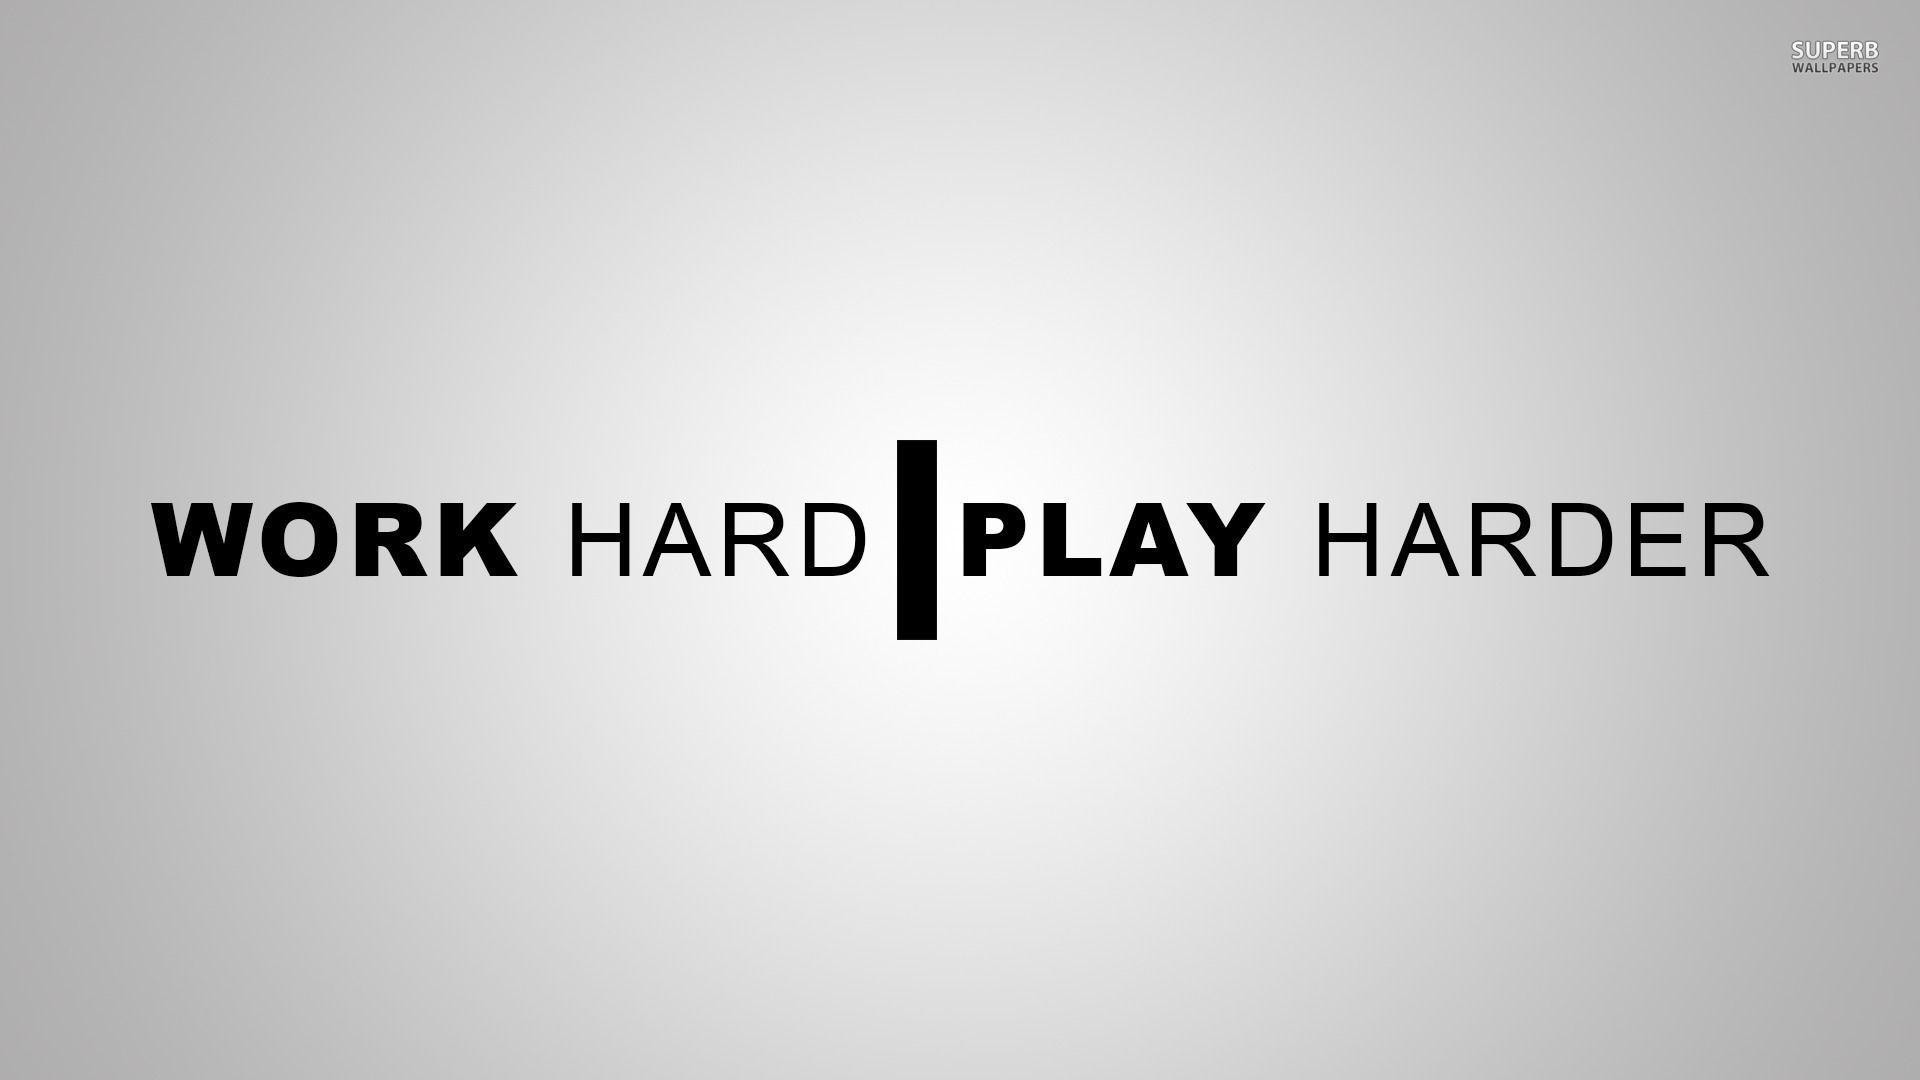 Work hard wallpaper 82 images 1920x1080 work hard play harder 26436 thecheapjerseys Image collections